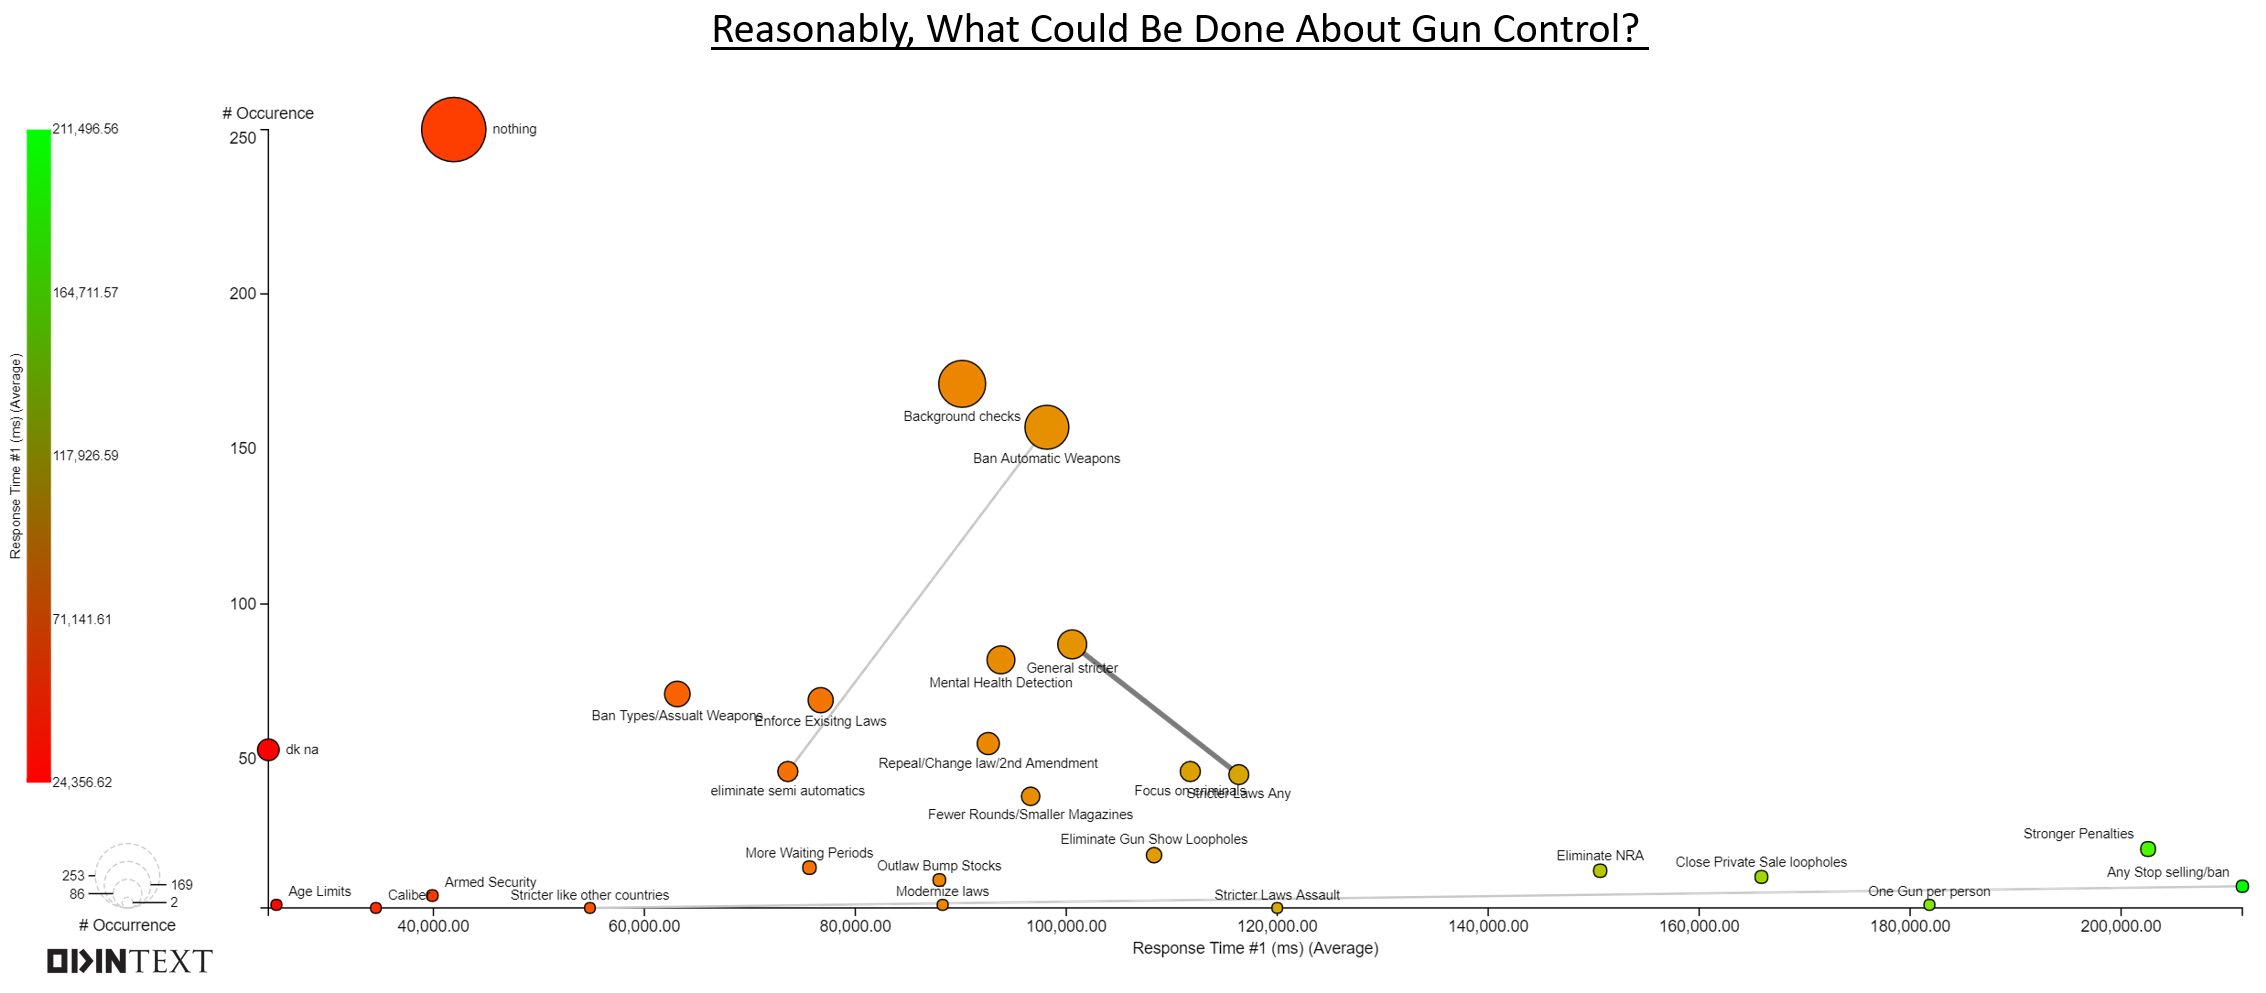 What could be done about gun control poll